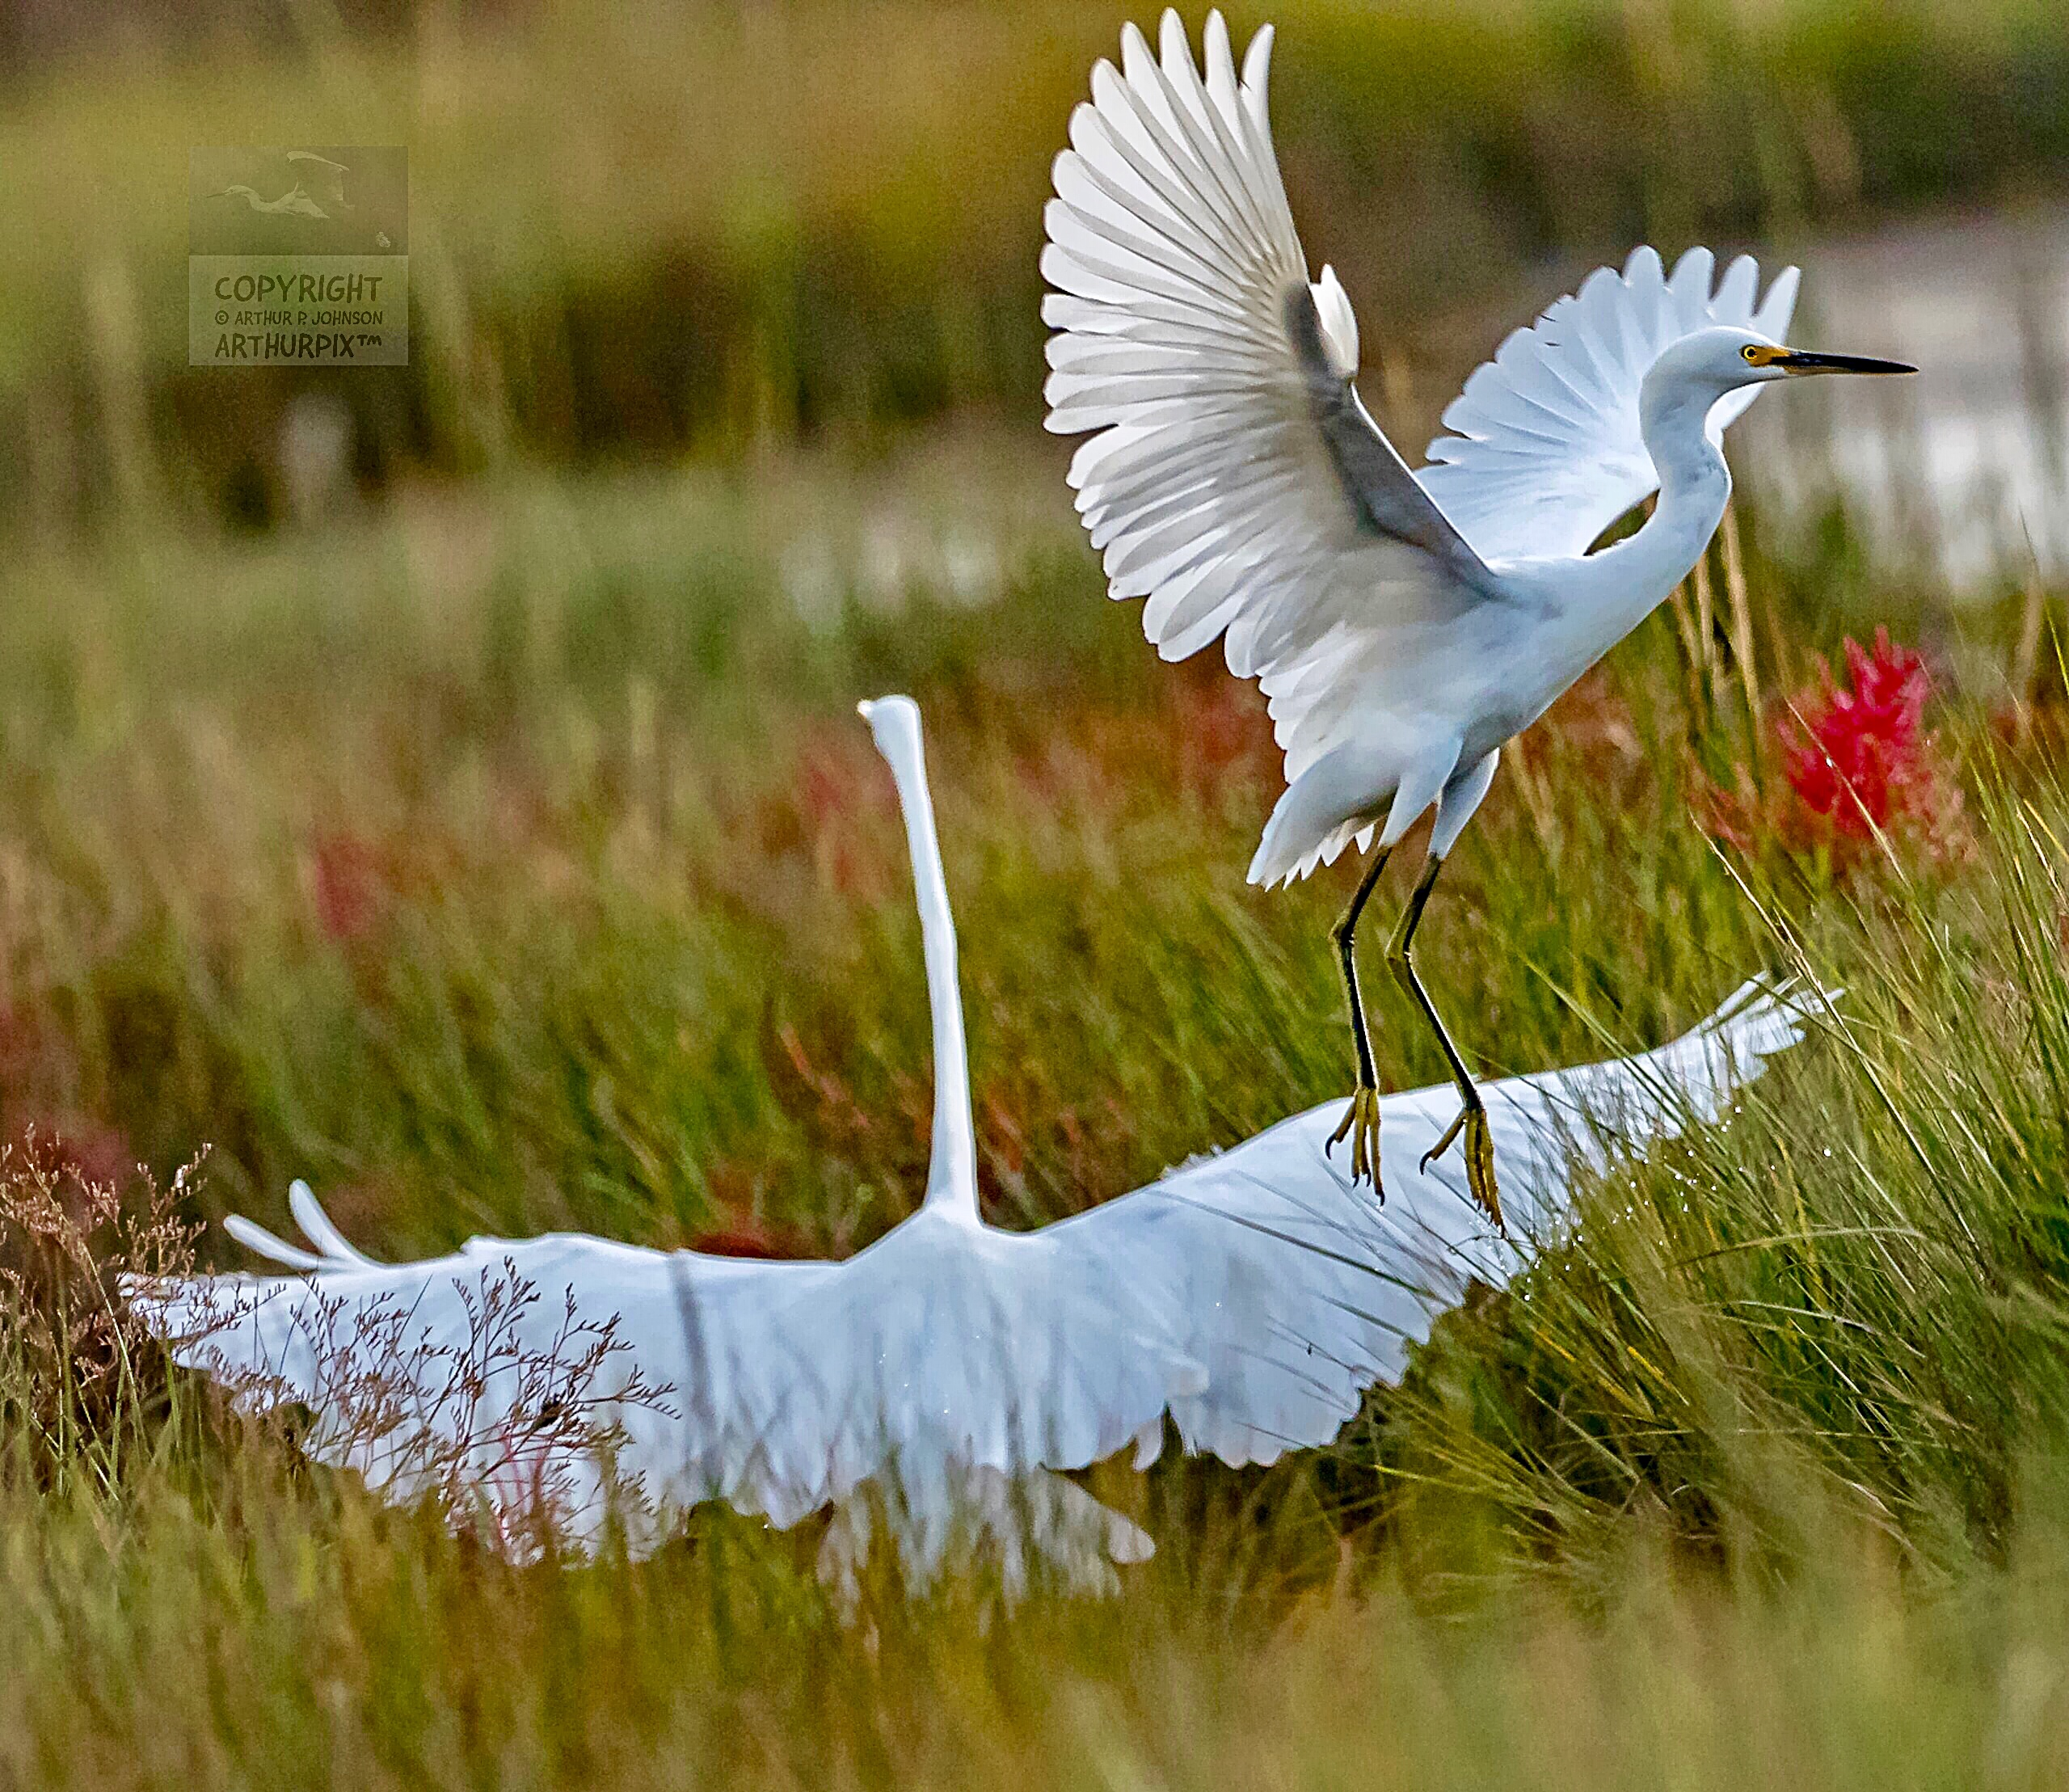 Two Great Egrets, mother and Child, taking flight